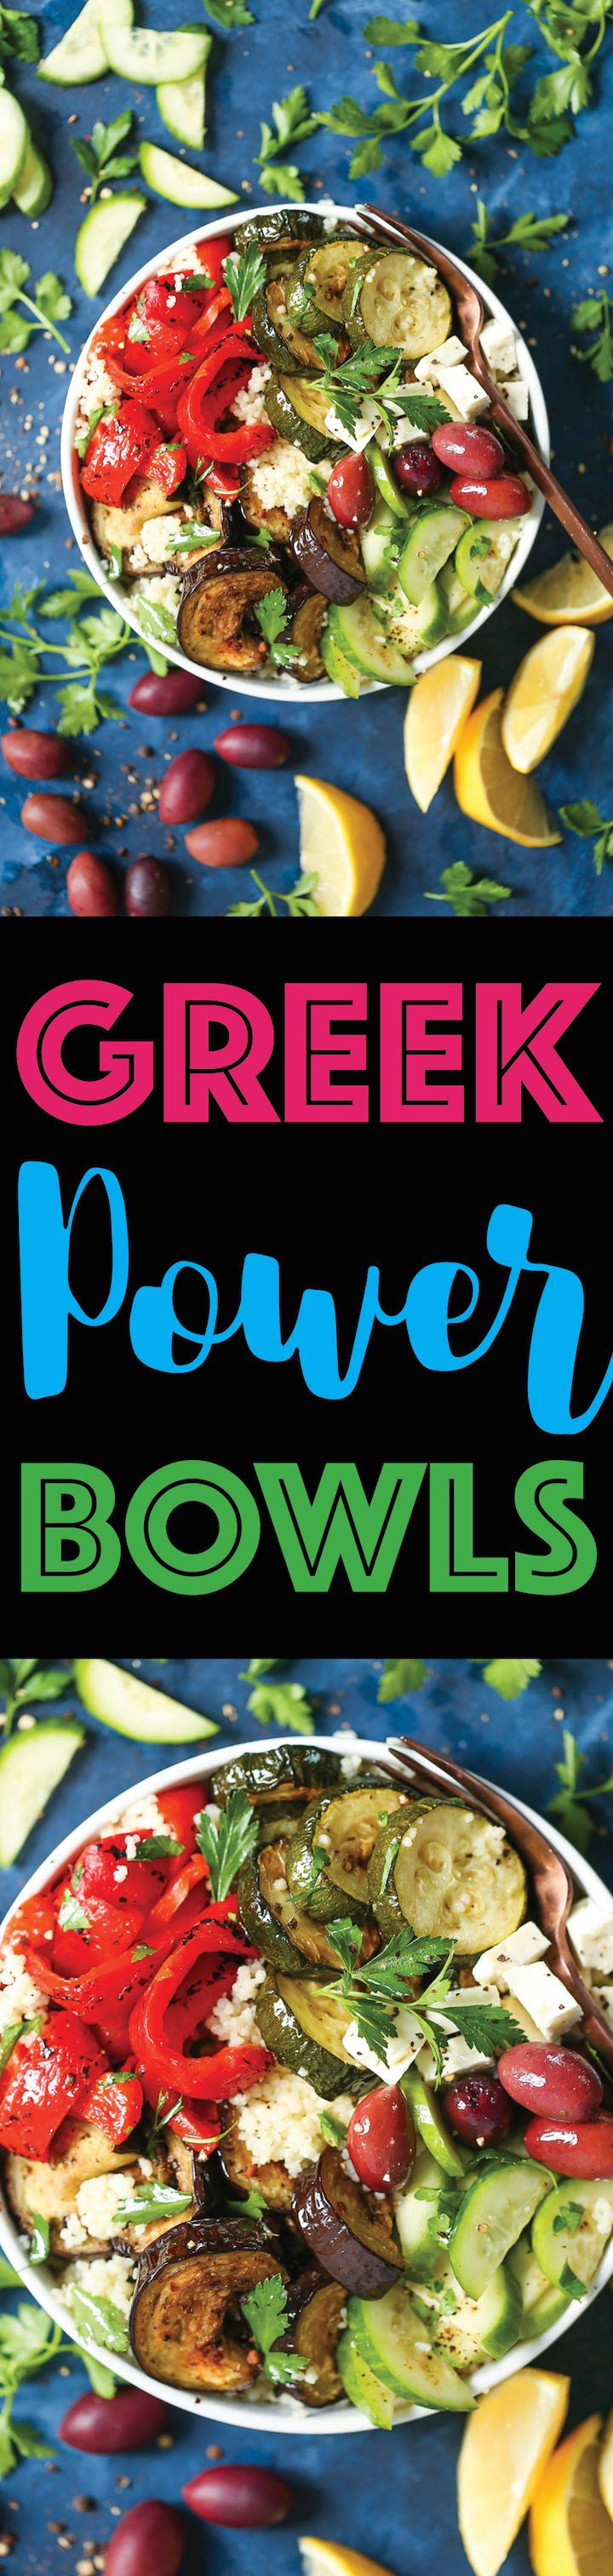 Greek Power Bowls - The quickest Mediterranean-inspired POWER BOWLS! Made in less than 30 minutes with roasted eggplant, zucchini, bell peppers, fresh cucumbers, olives and feta with a simple yet amazing red wine vinaigrette! Nutrient-rich, low-carb, filling and healthy!